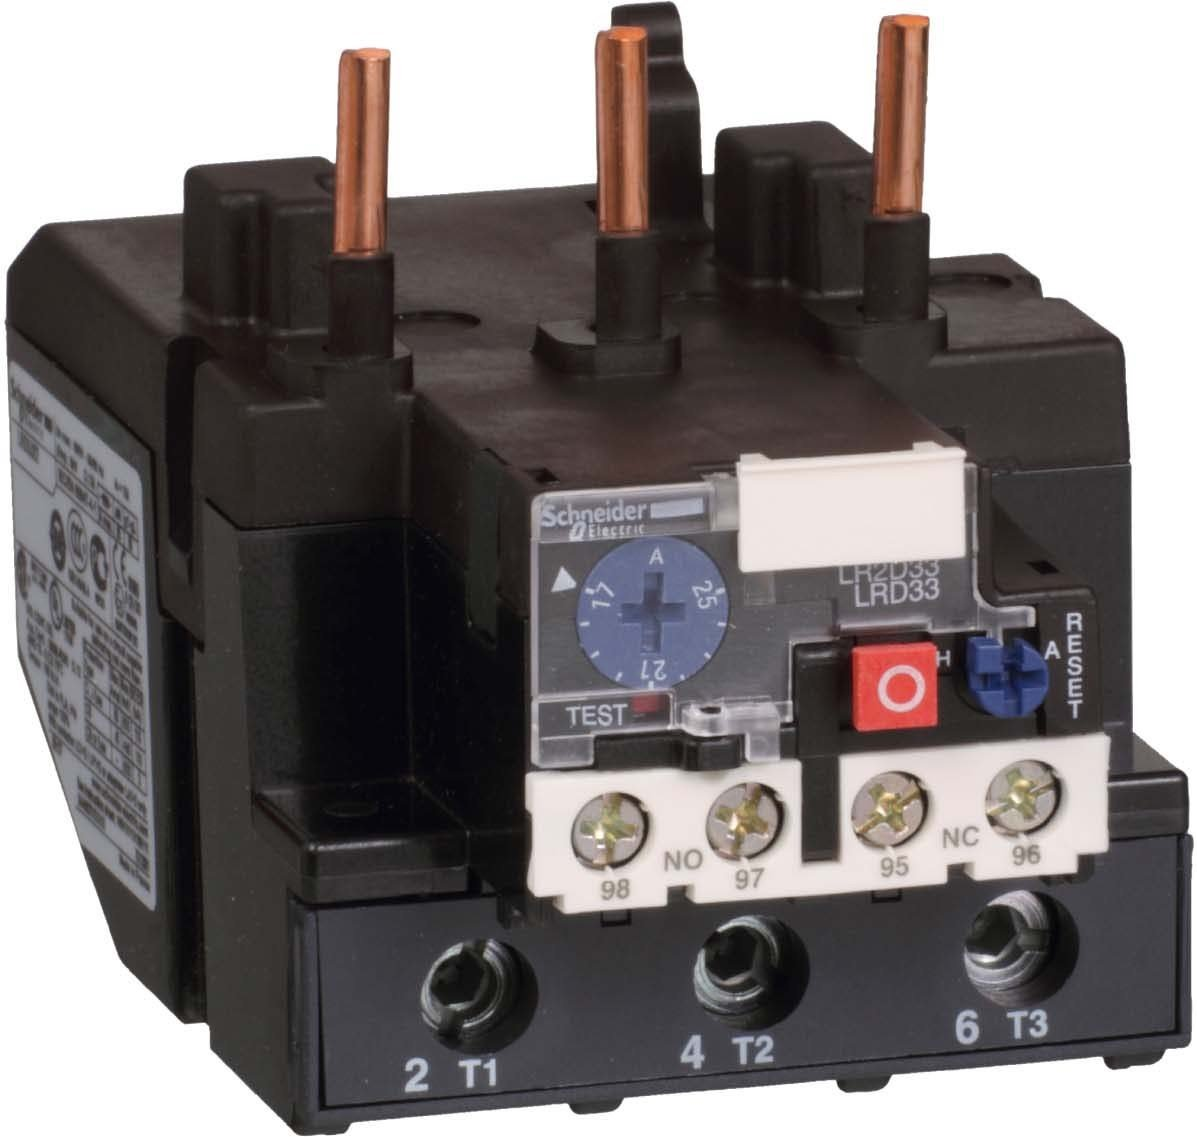 Schneider Electric LRD3359 Relay 48-65A, Overload Relay 48 To 65A